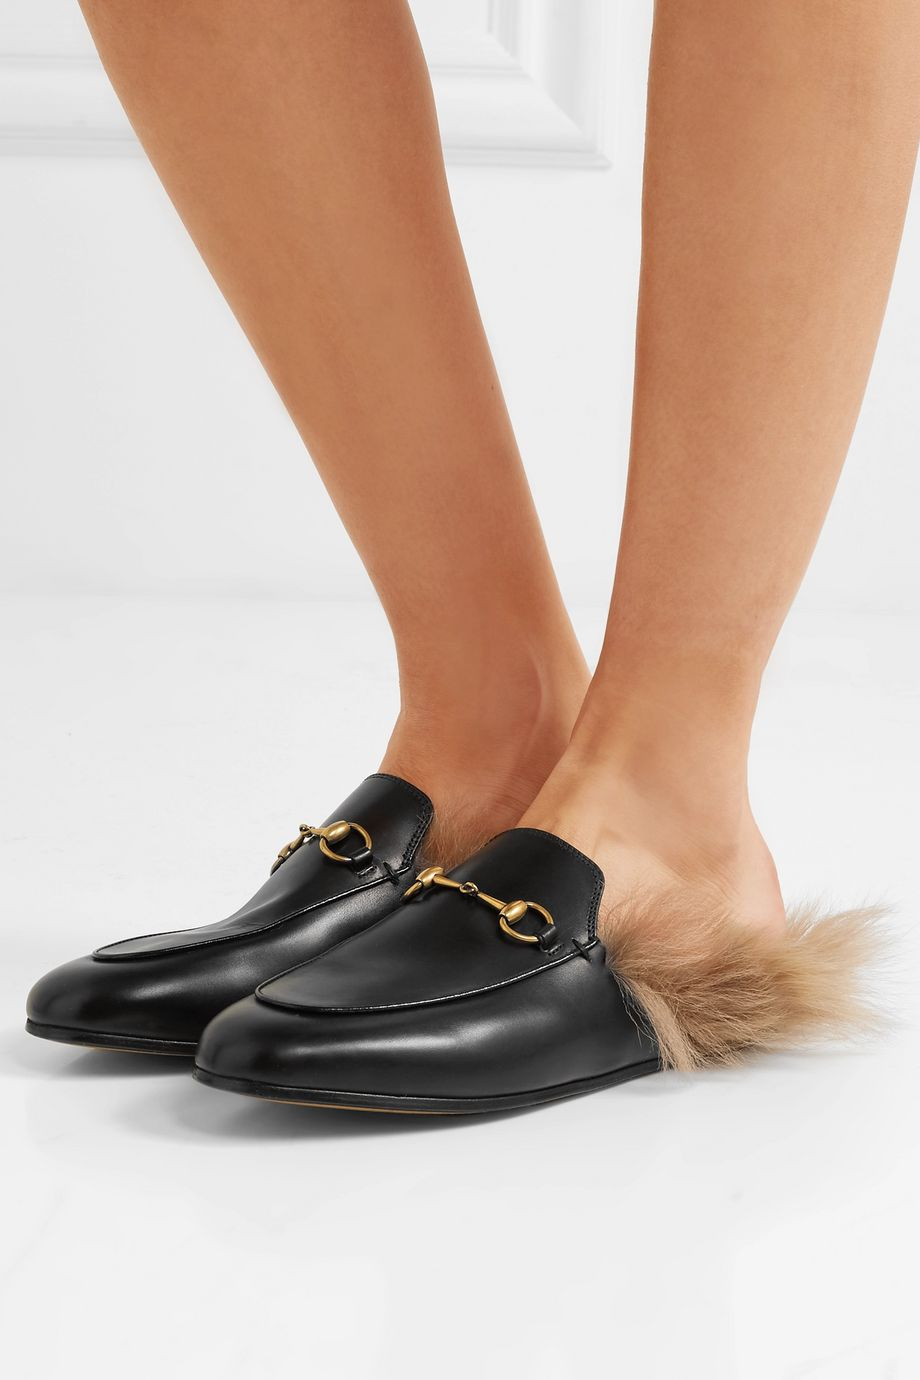 Gucci Princetown horsebit-detailed shearling-lined leather slippers